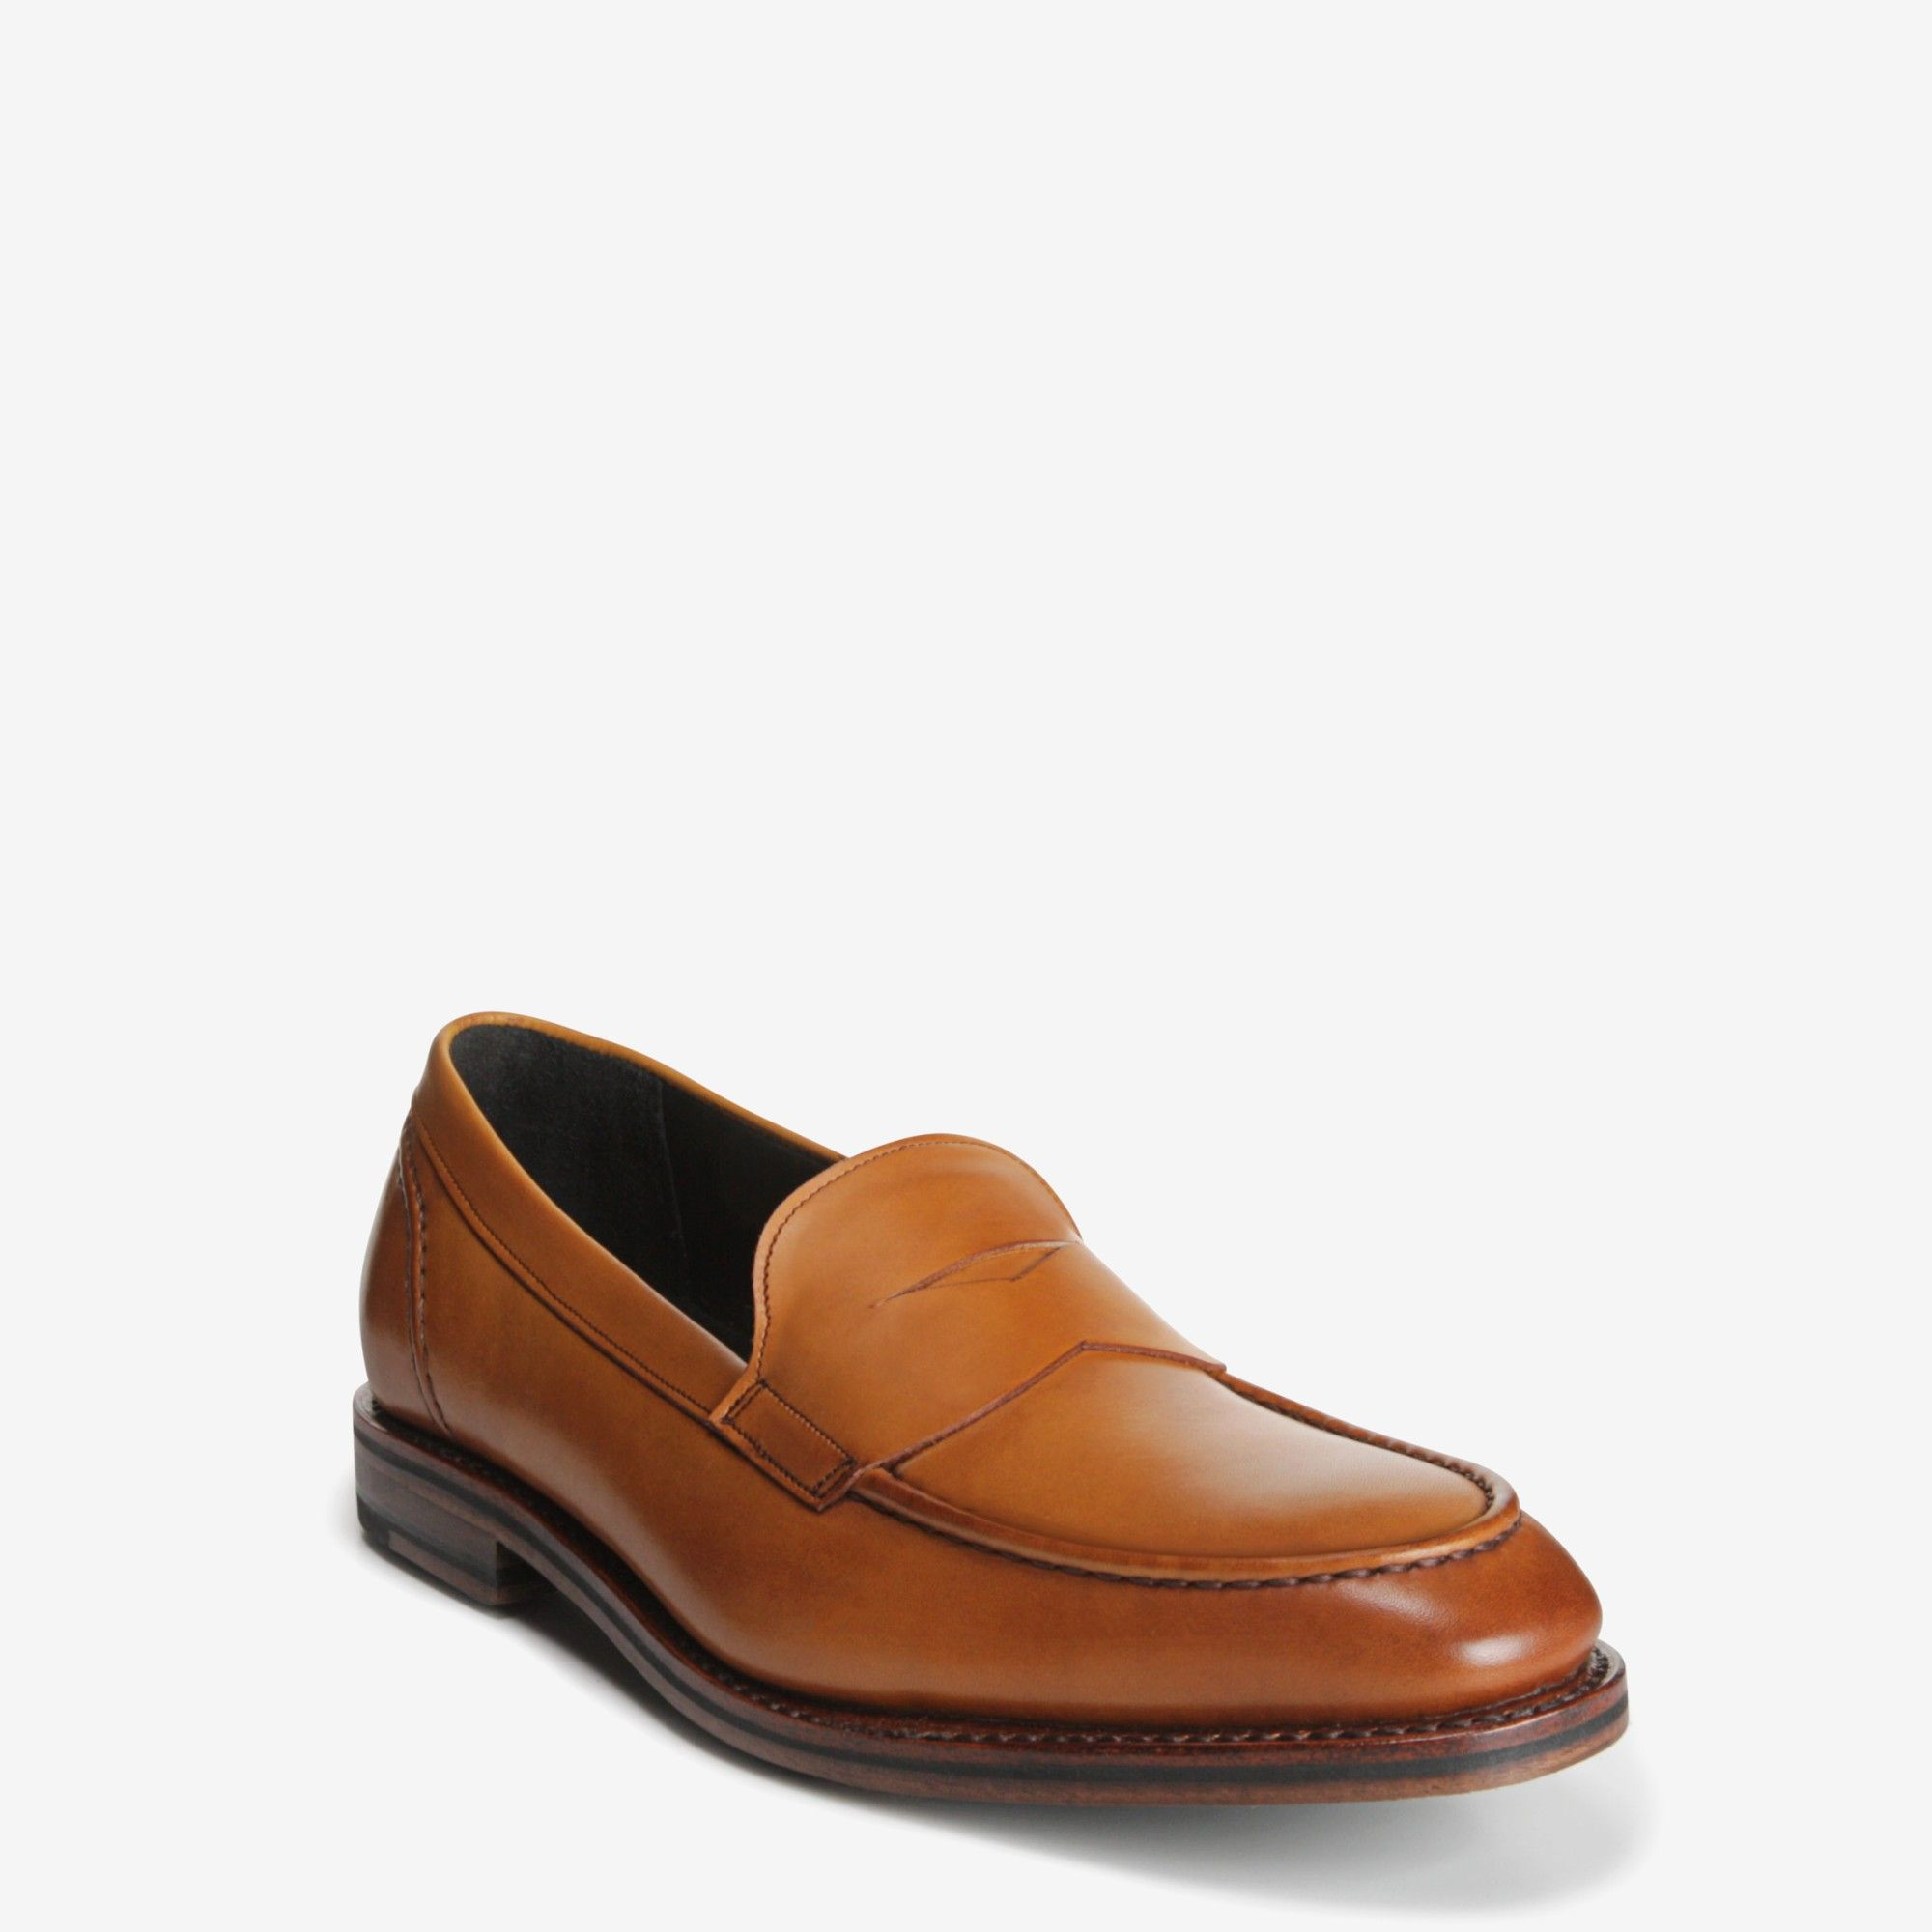 dbfe42e796d Mercer Street Penny Loafers by Allen Edmonds Allen Edmonds